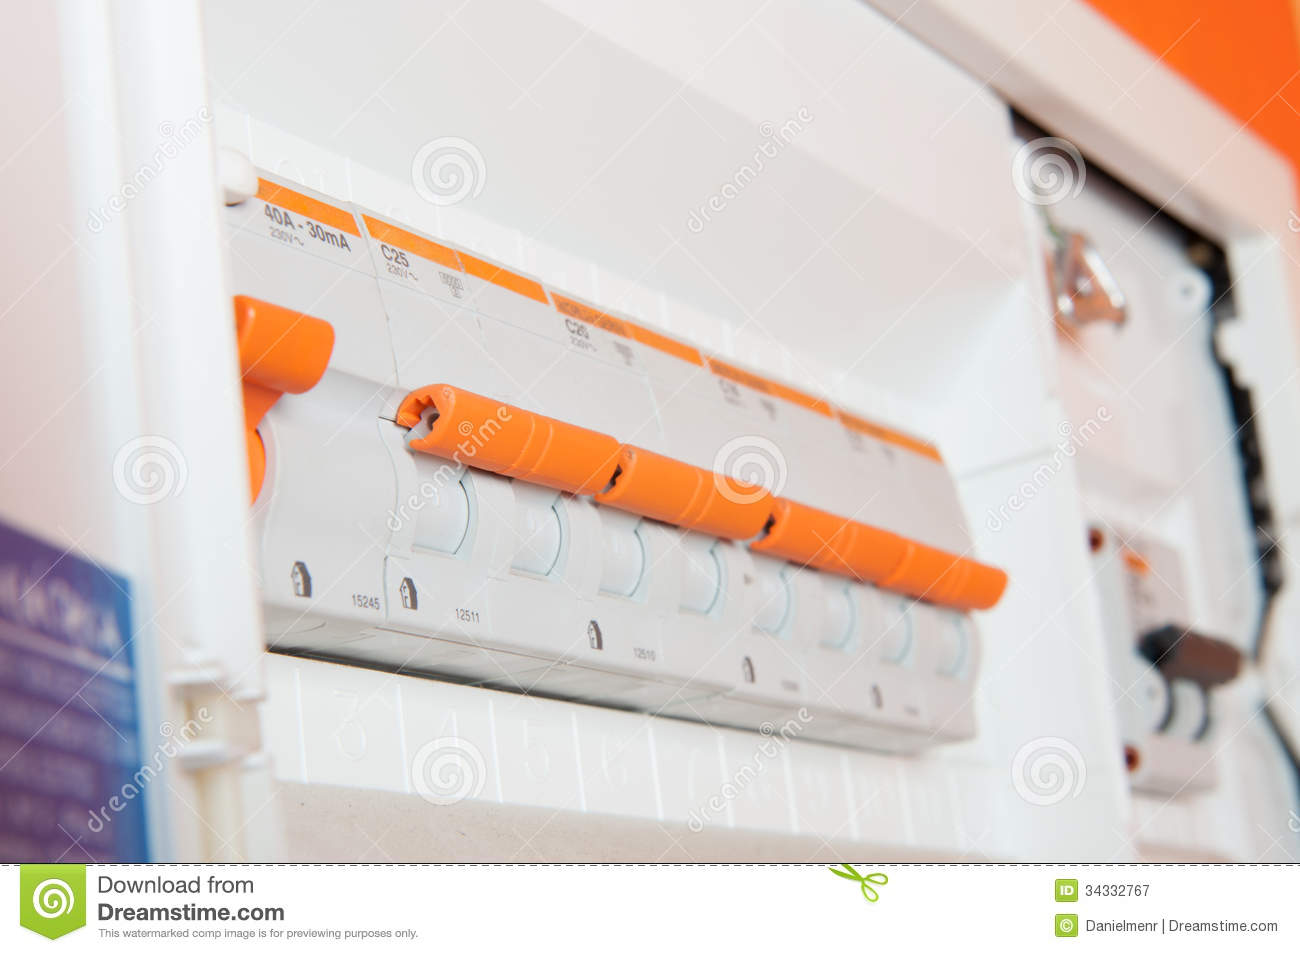 Automatic Stock Image Of Equipment Electronic 34332767 House Fuse Box A Small